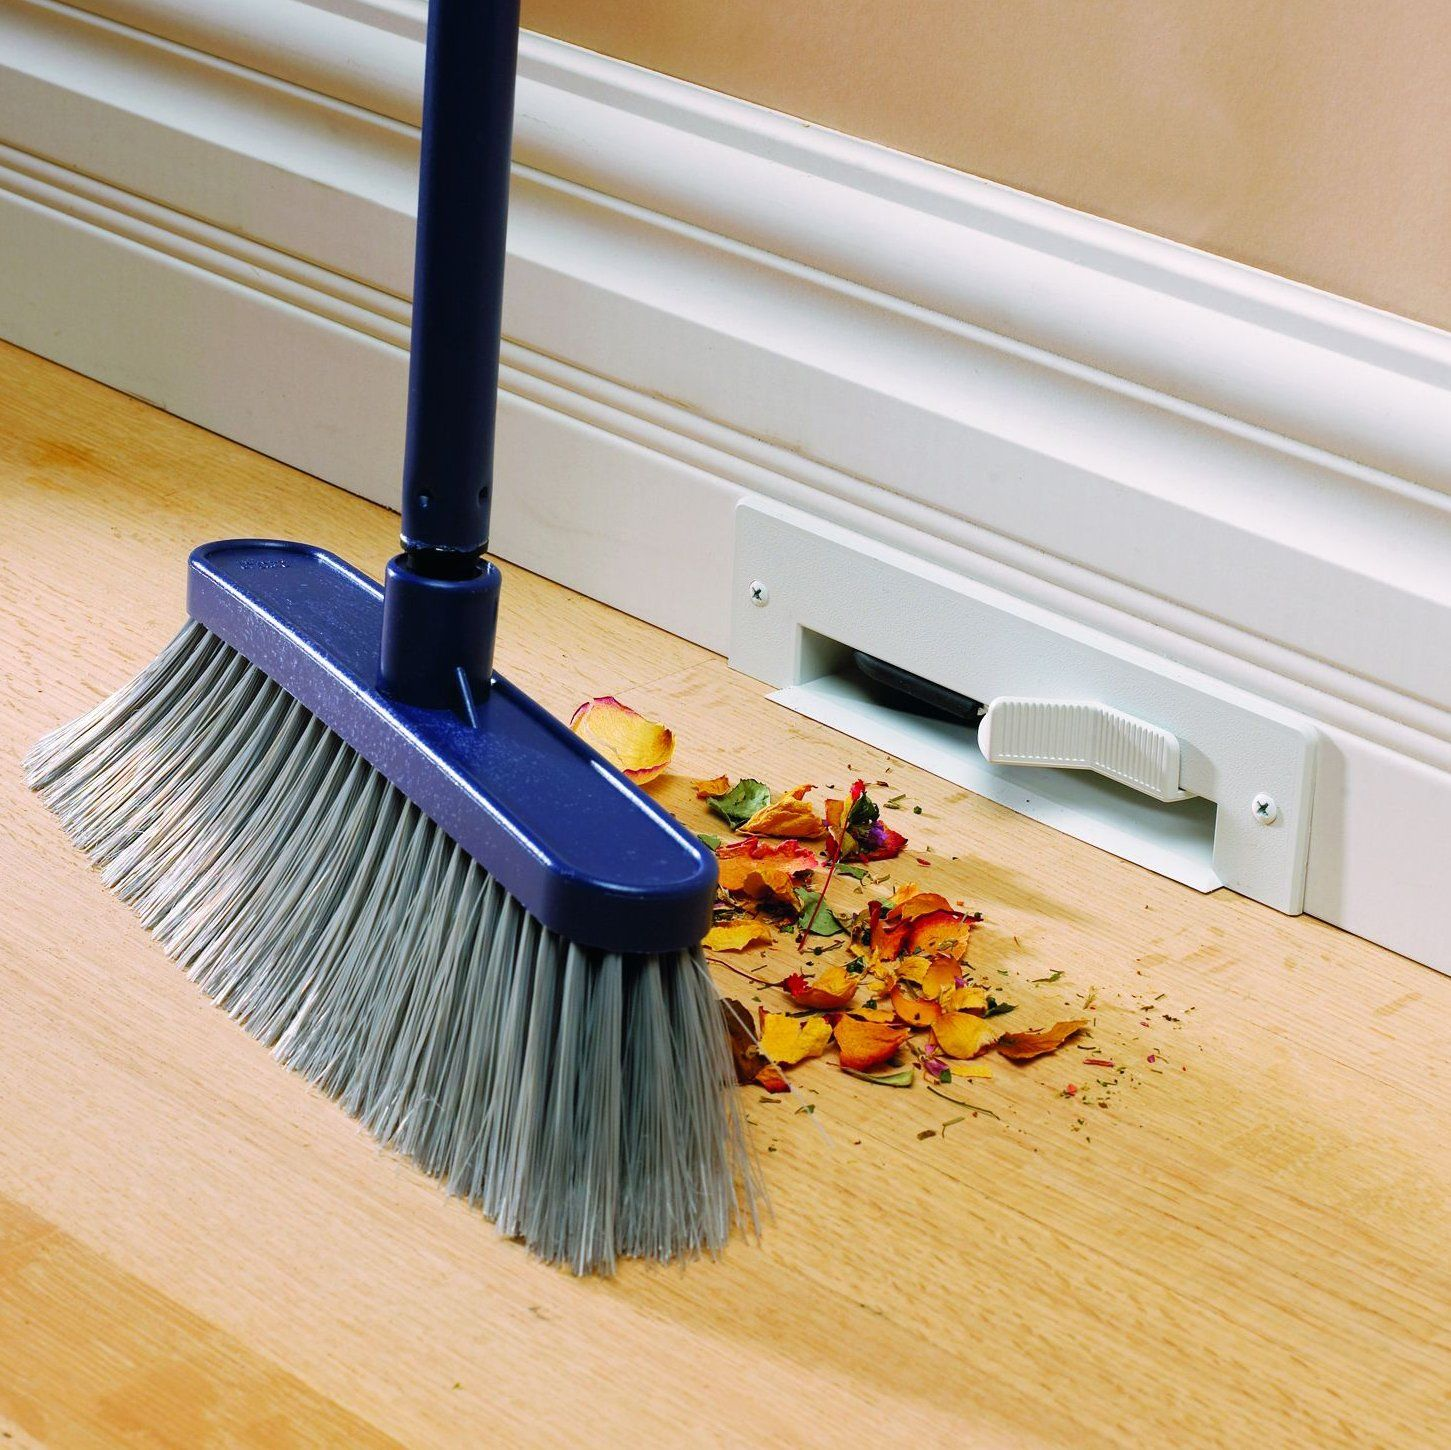 Central Vacuum Automatic Dustpan New Homes Sweet Home Dream House